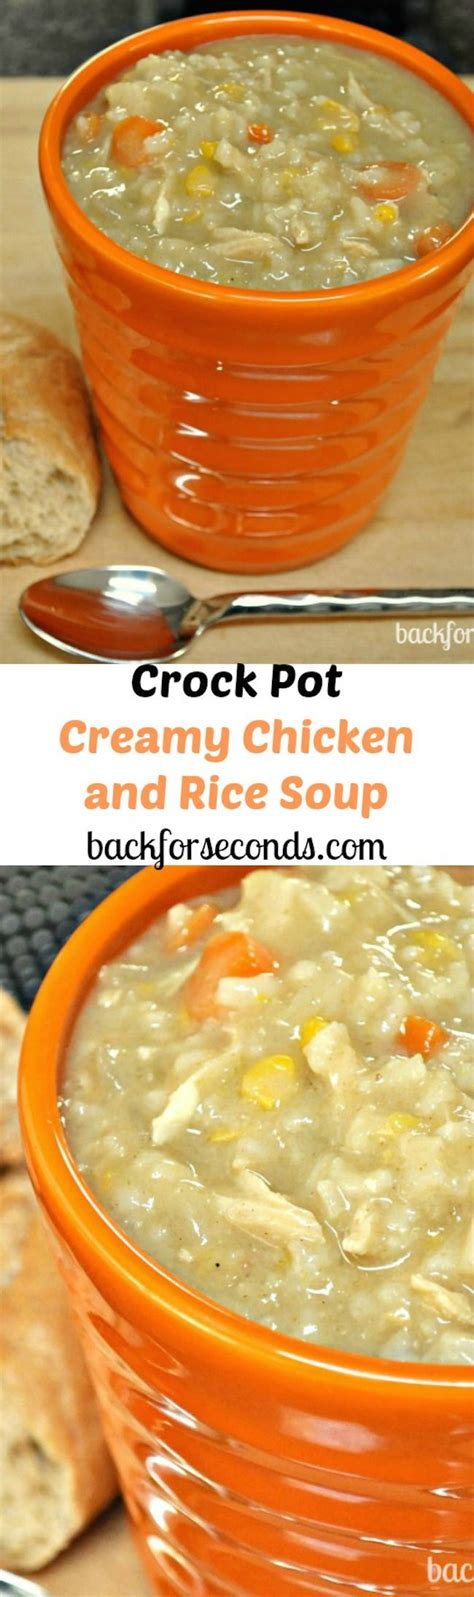 easy crock pot creamy chicken and rice soup main dishes pinterest cold weather put